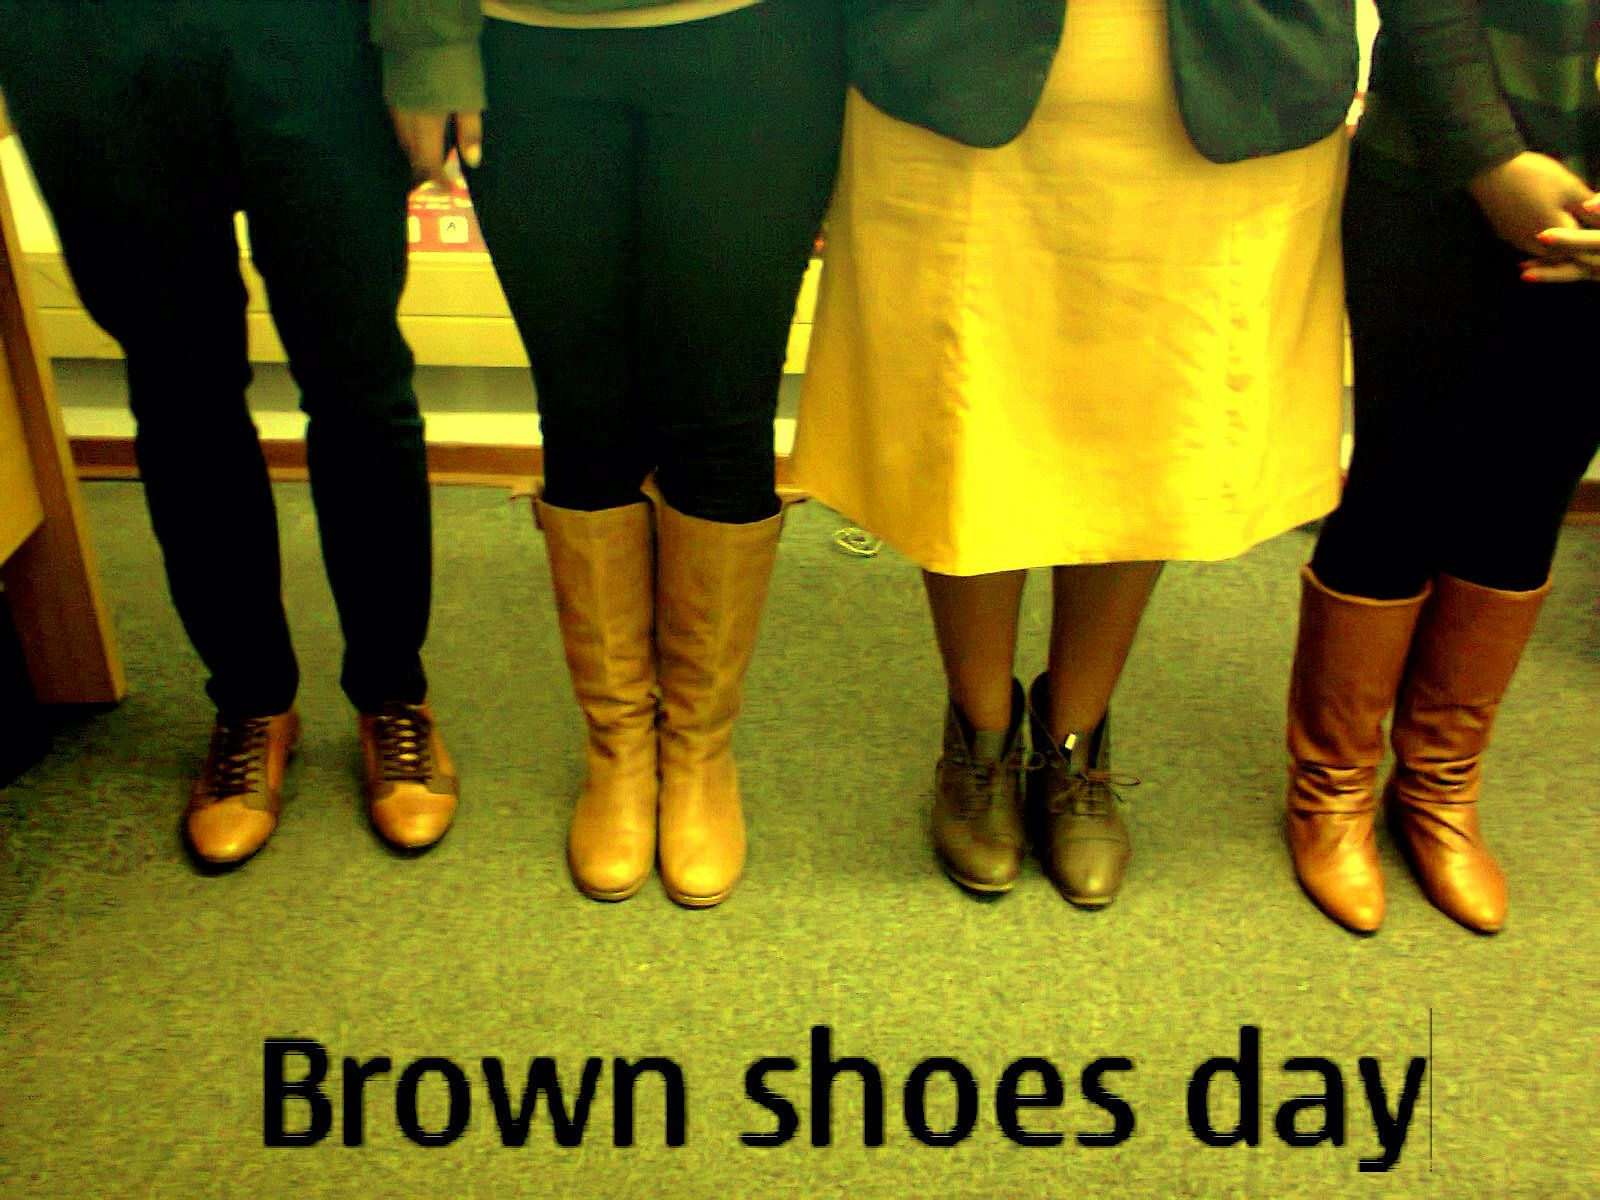 The receptionists at work all wore brown shoes the other day. Oh and our one male friend too...